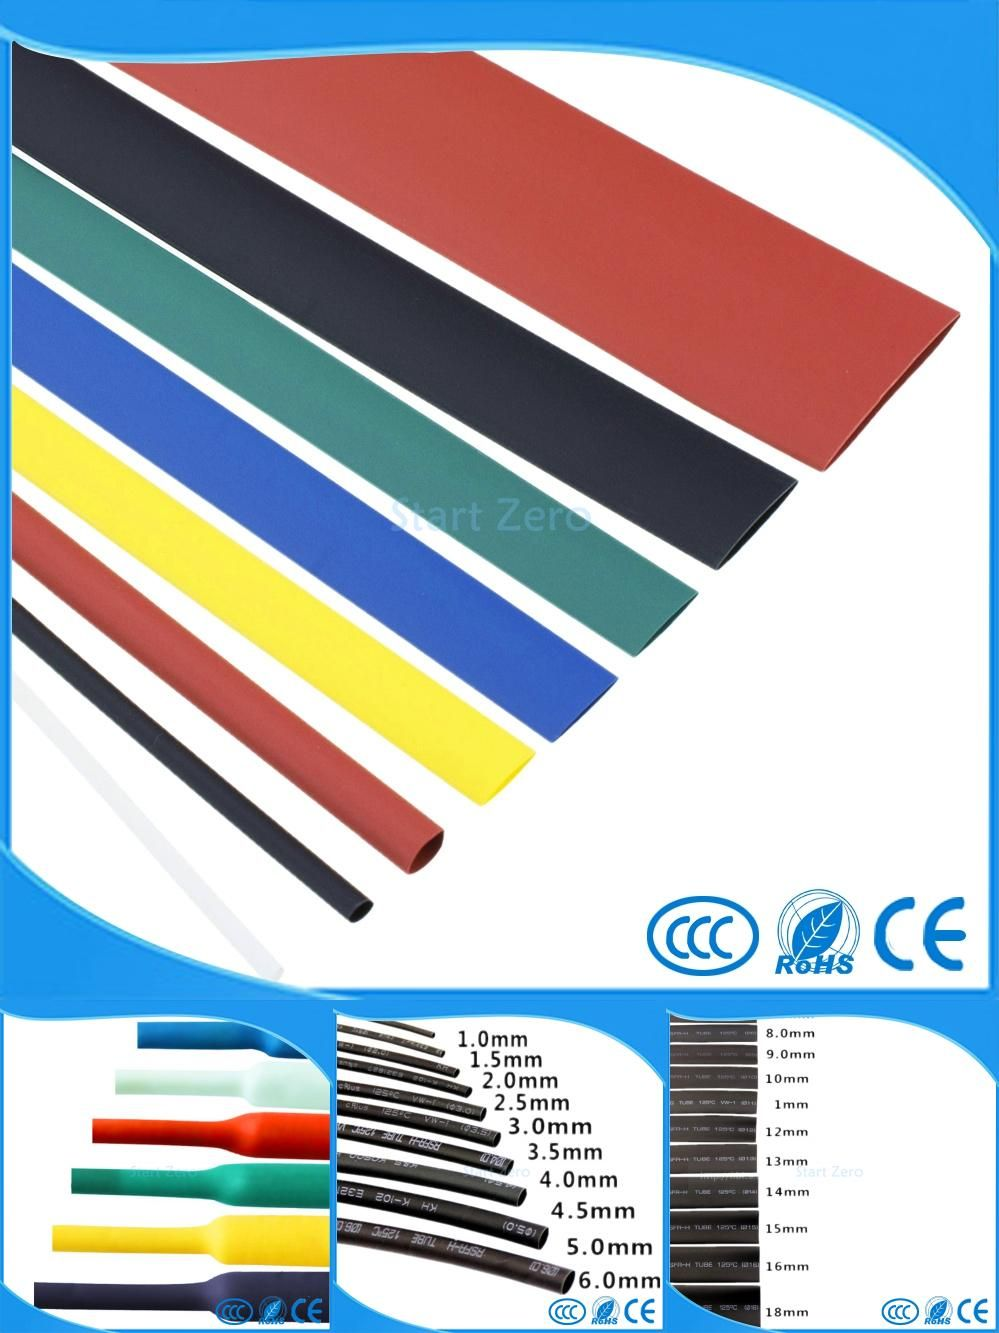 Pvc Buis 16mm Visit To Buy 7 Color 18mm 20mm 22mm 25mm 30mm 35mm 40mm 50mm